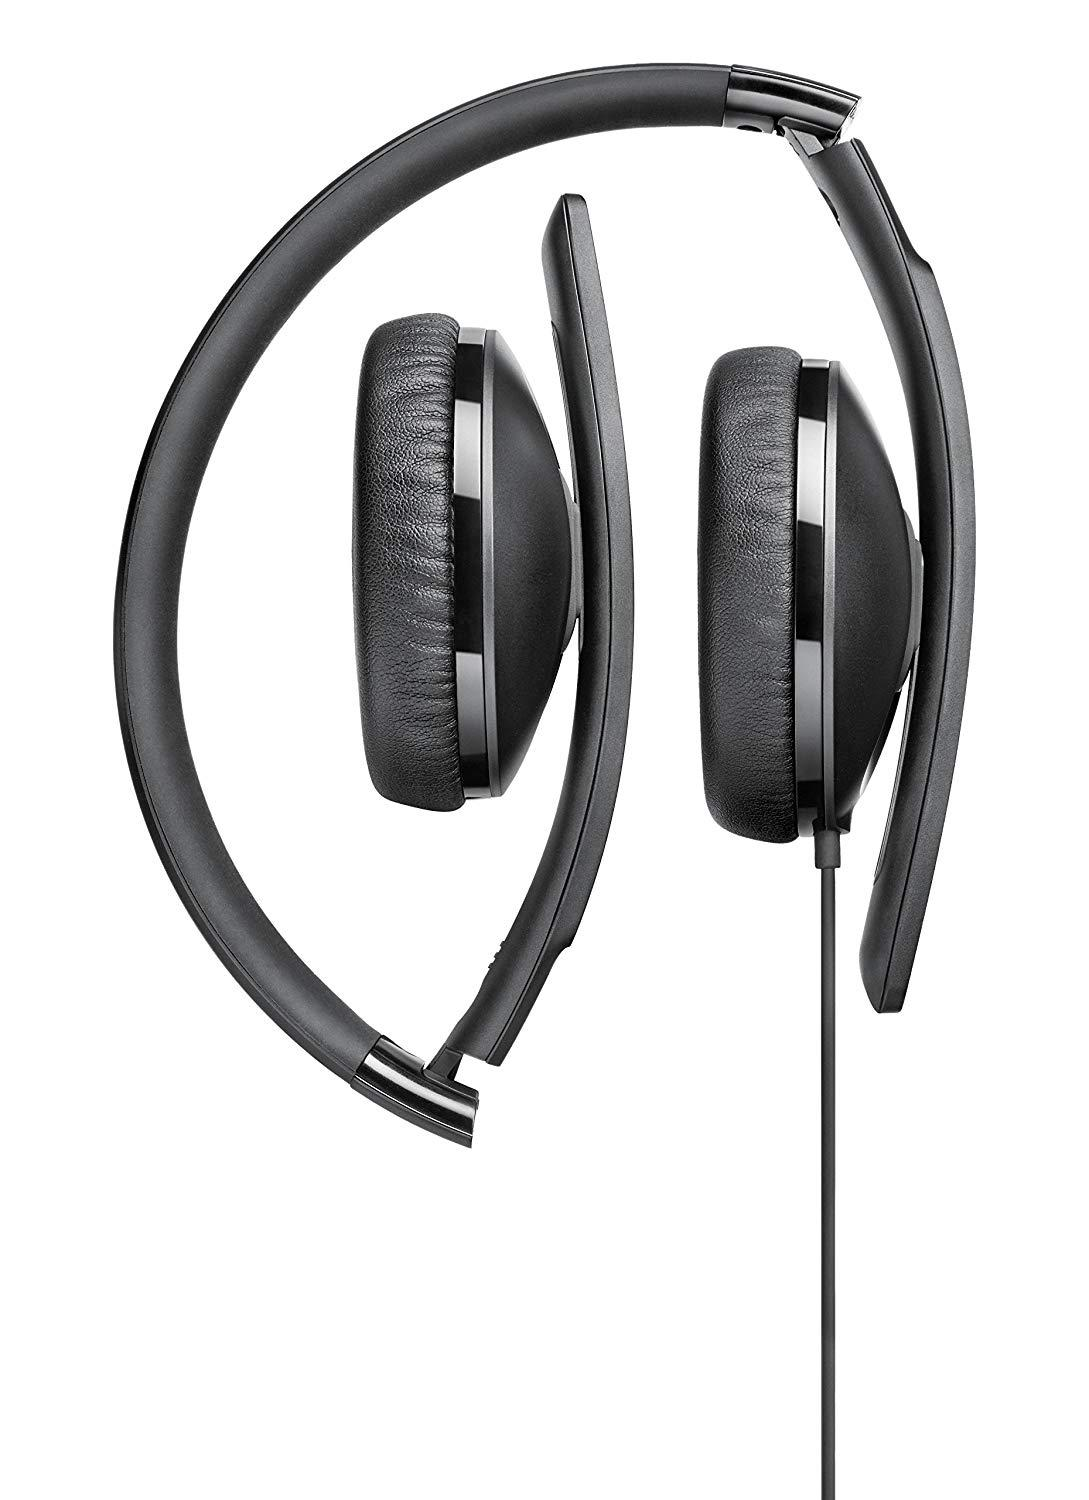 Sennheiser HD 2.20s Ear Headphones (Discontinued by Manufacturer)